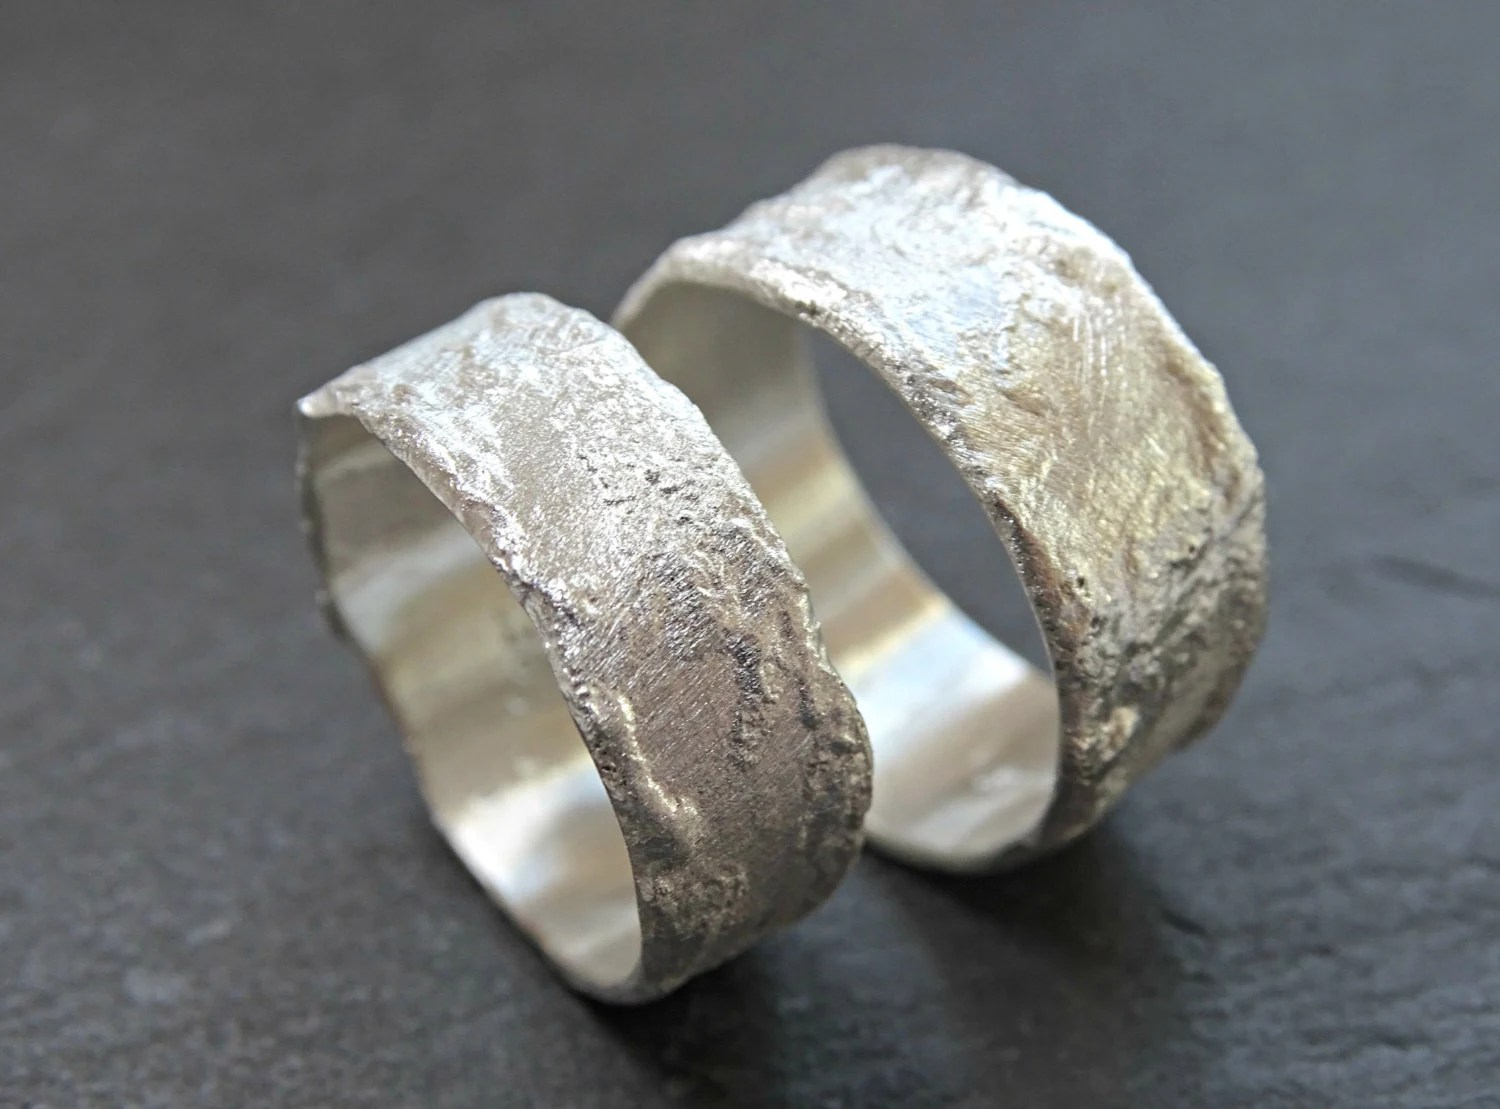 abstract silver ring hsn wedding rings unique wedding rings rustic cool wilderness rings matching wedding bands silver structured rings abstract fused ring bands molten